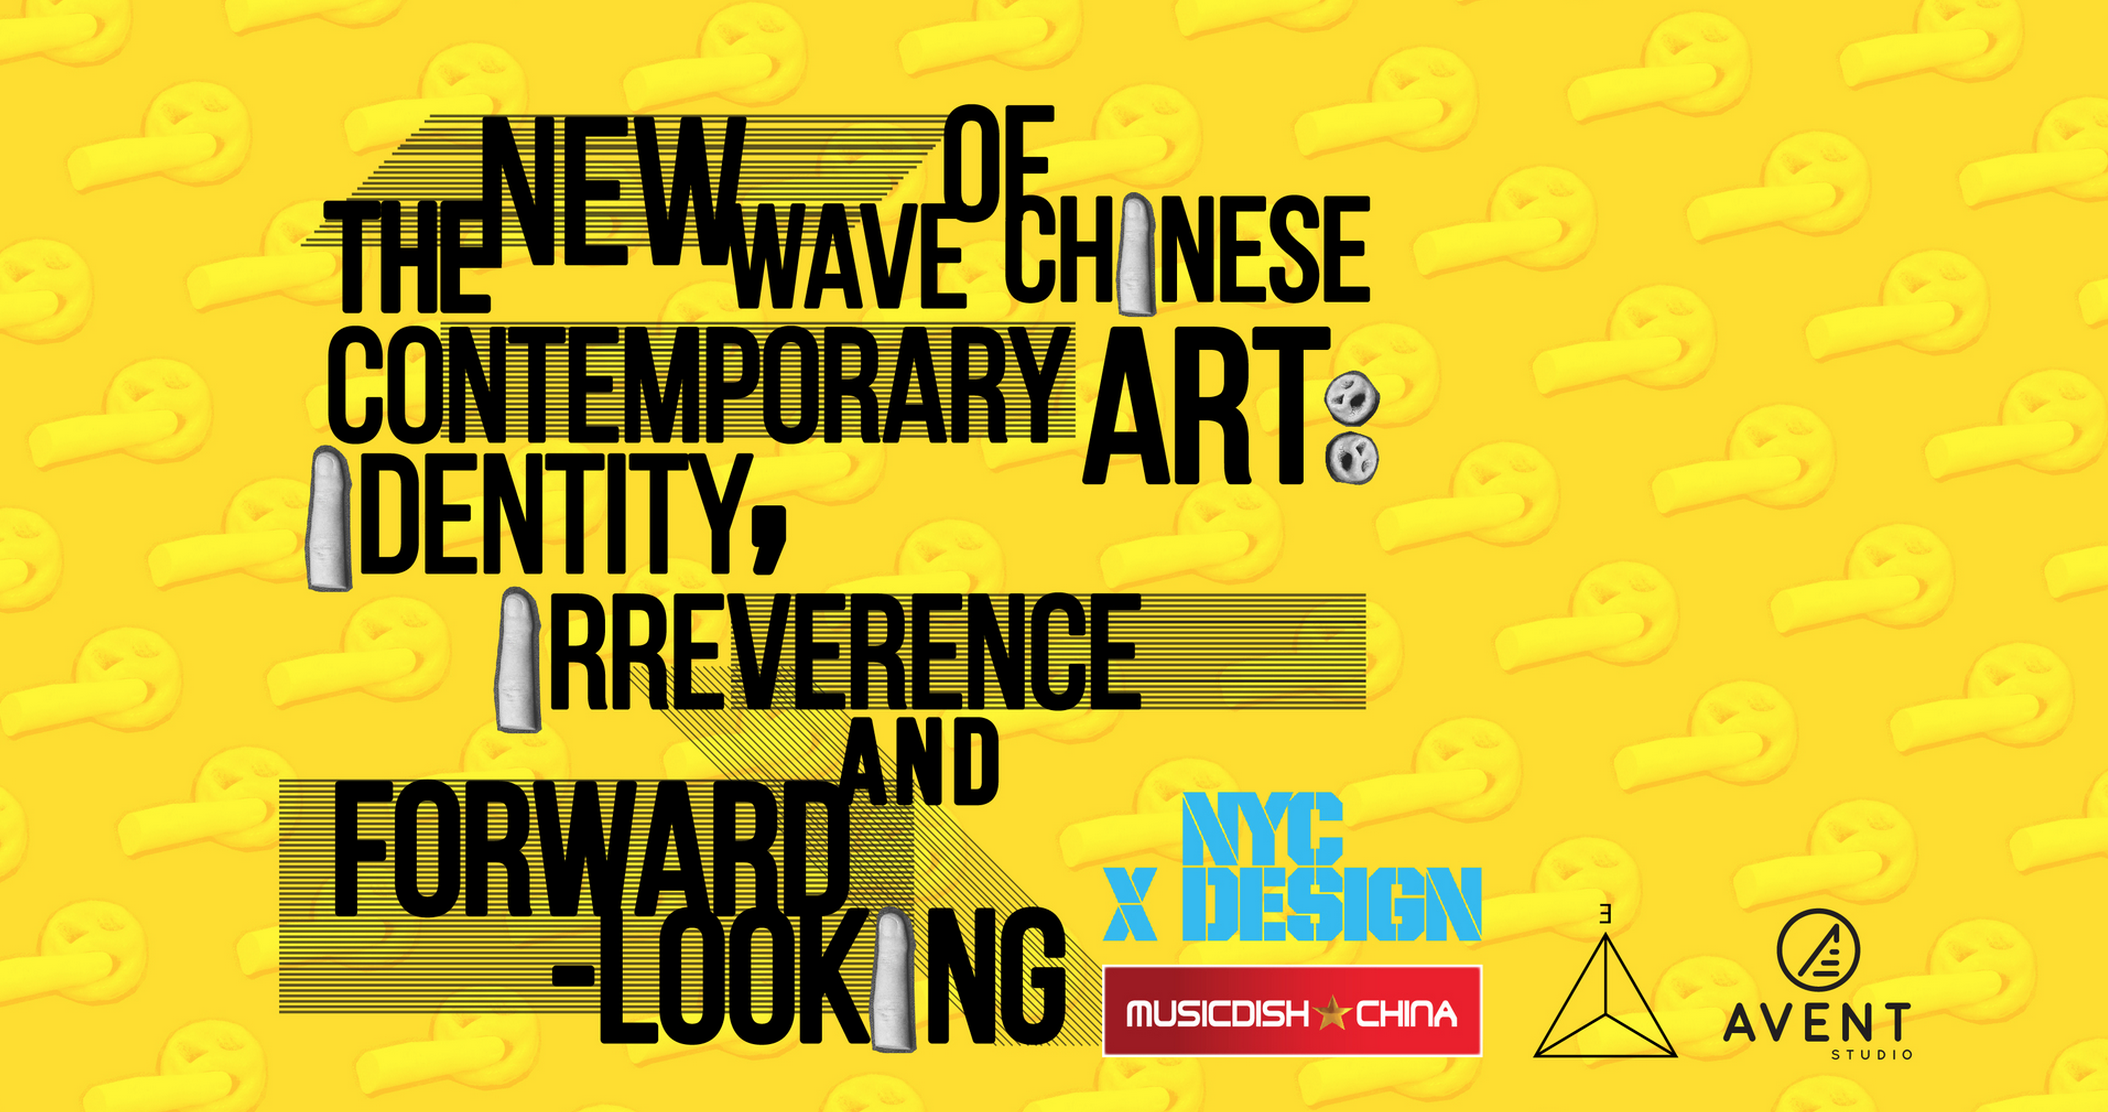 poster of the event: the New Wave of Chinese Contemporary Art: Identity, Irreverence and Forward-looking